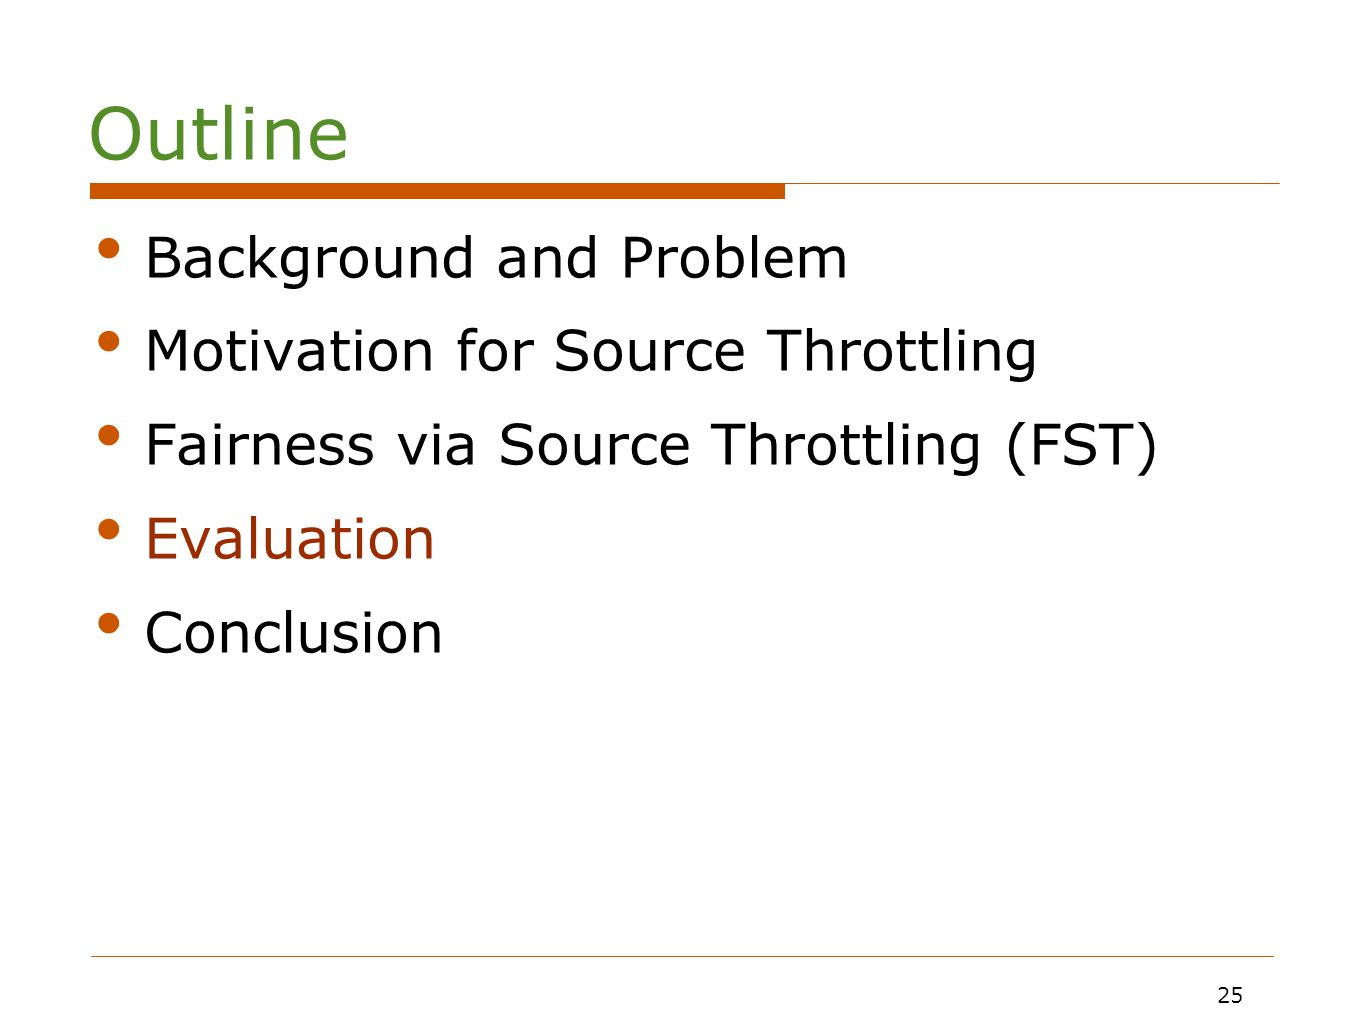 25 Background and Problem Motivation for Source Throttling Fairness via Source Throttling (FST) Evaluation Conclusion 25 Outline